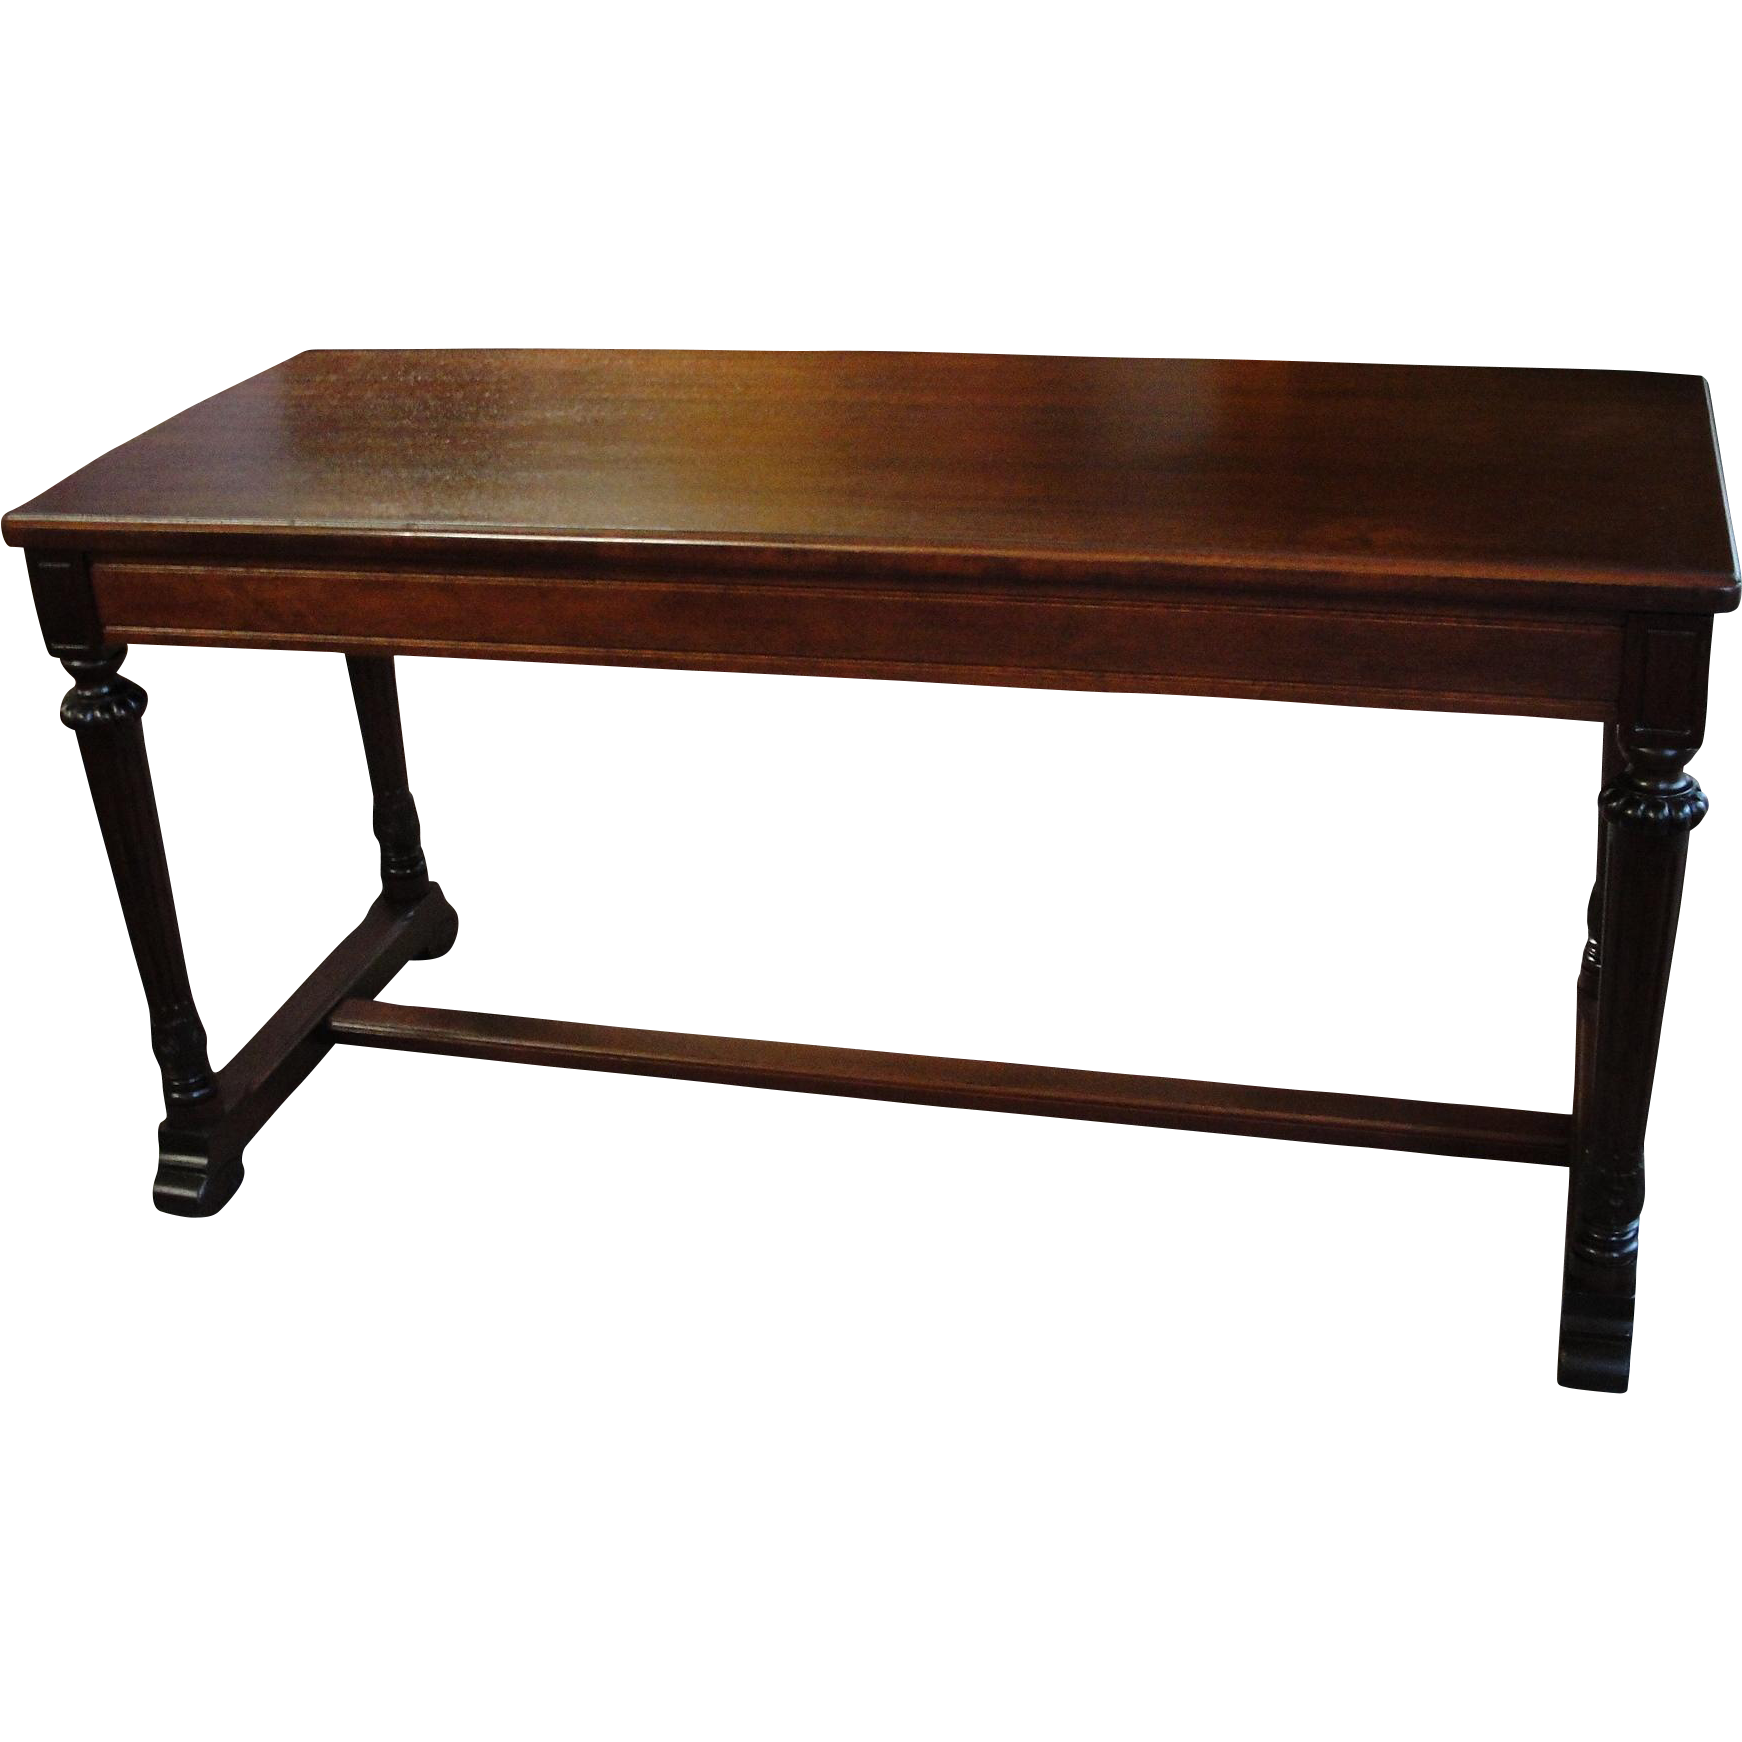 Vintage Mahogany Piano Or Organ Bench With Lift Lid From Breadandbutter On Ruby Lane